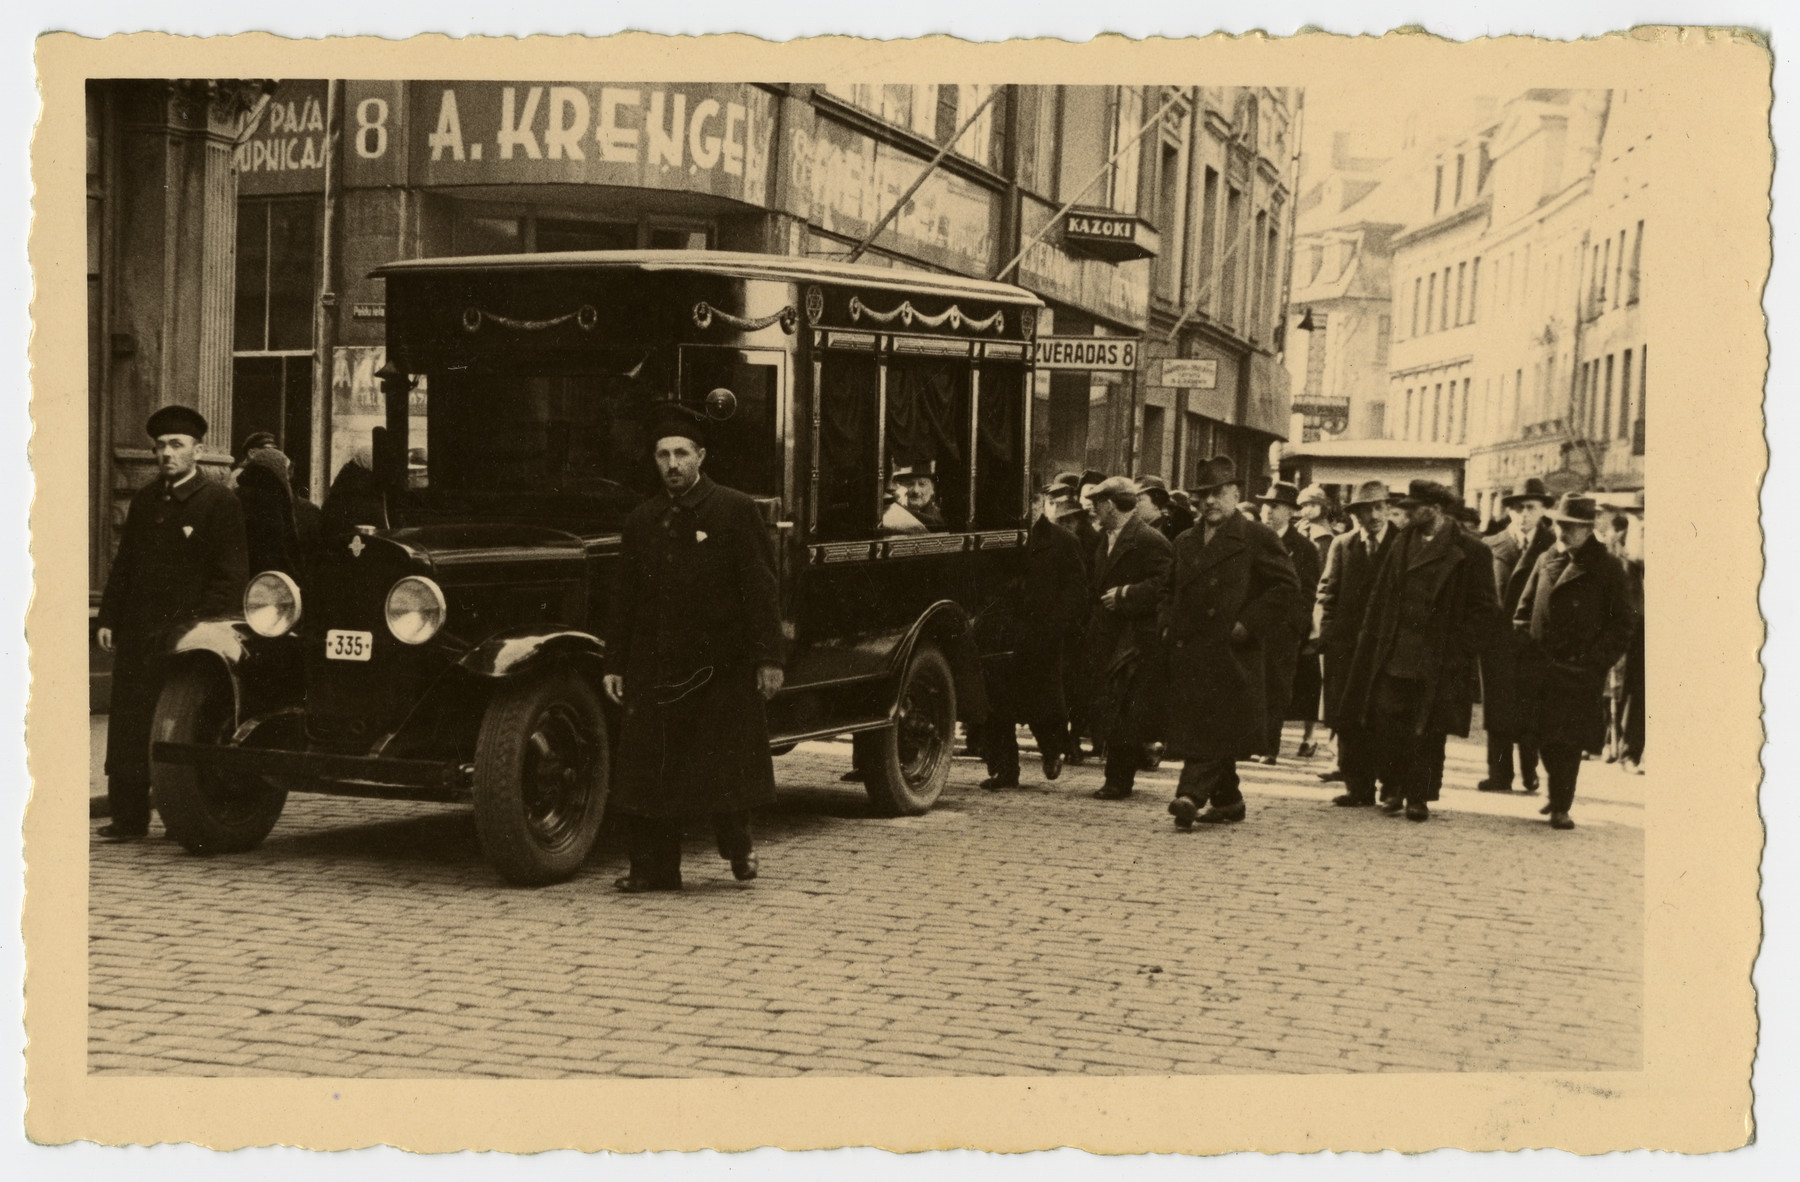 Mourners accompany the hearse carrying the body of Freida Albin prior to her funeral.    Mr. Joffee is in front and Uncle Abraham is behind the hearse.